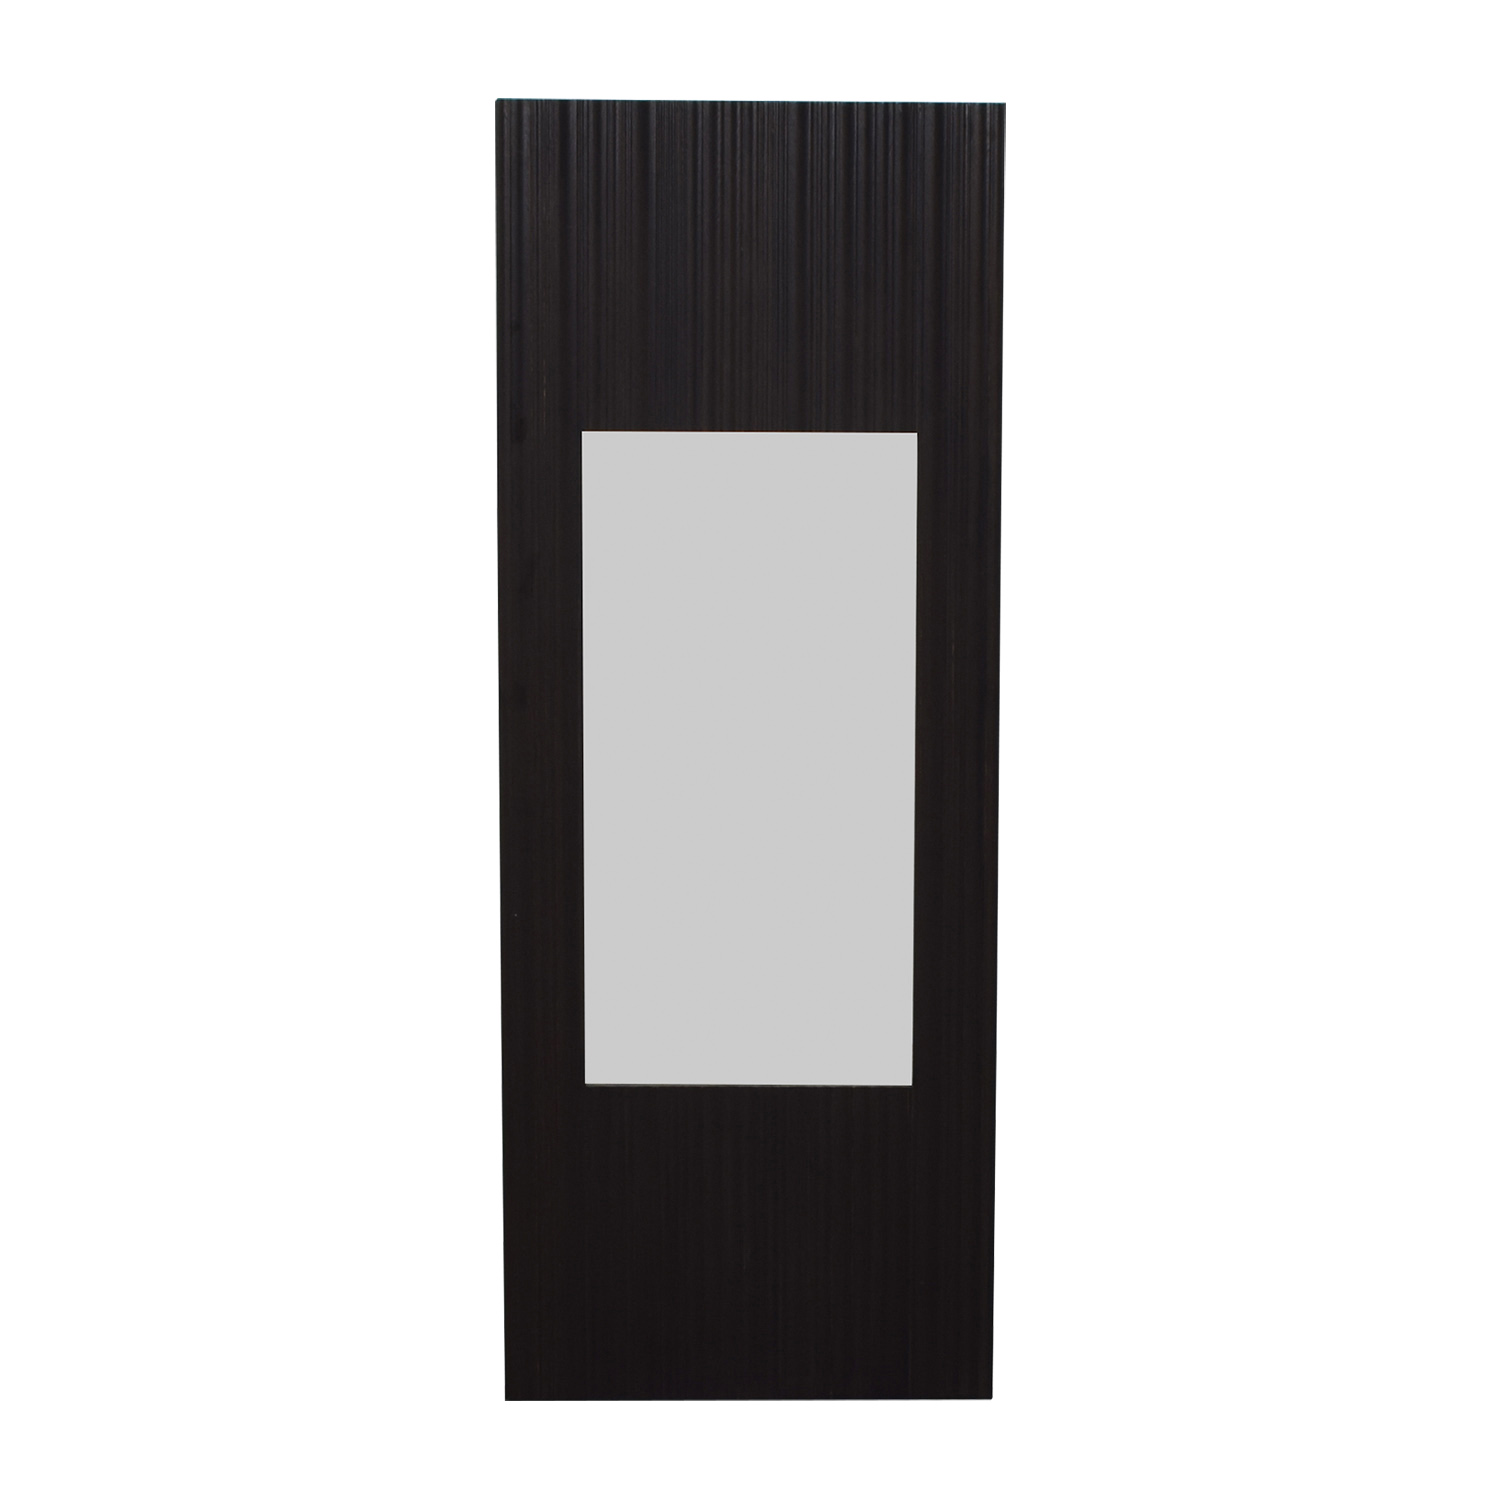 Pier 1 Imports Pier 1 Imports Rectangular Mirror coupon